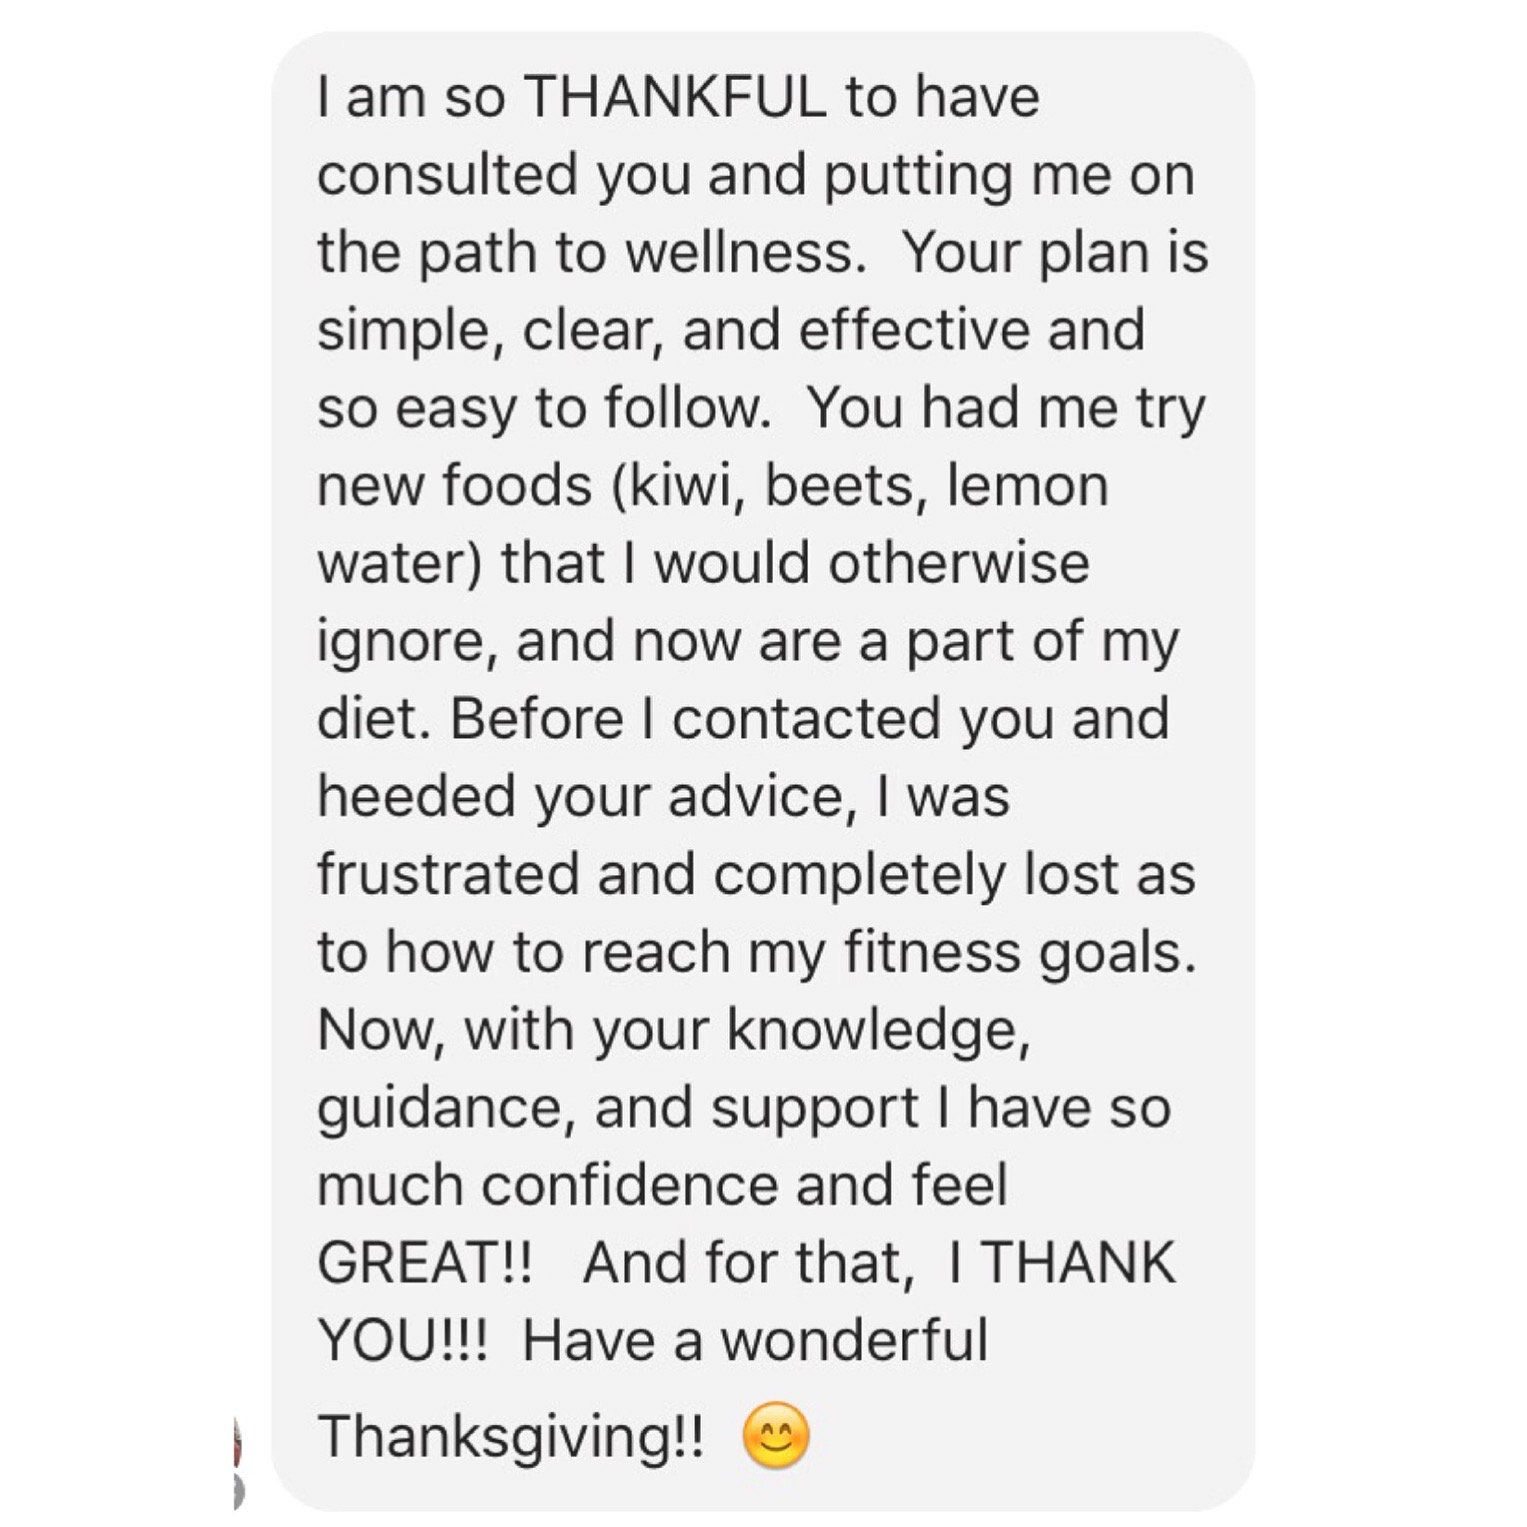 Eat Right Meal Plan Review - Christina Carlyle